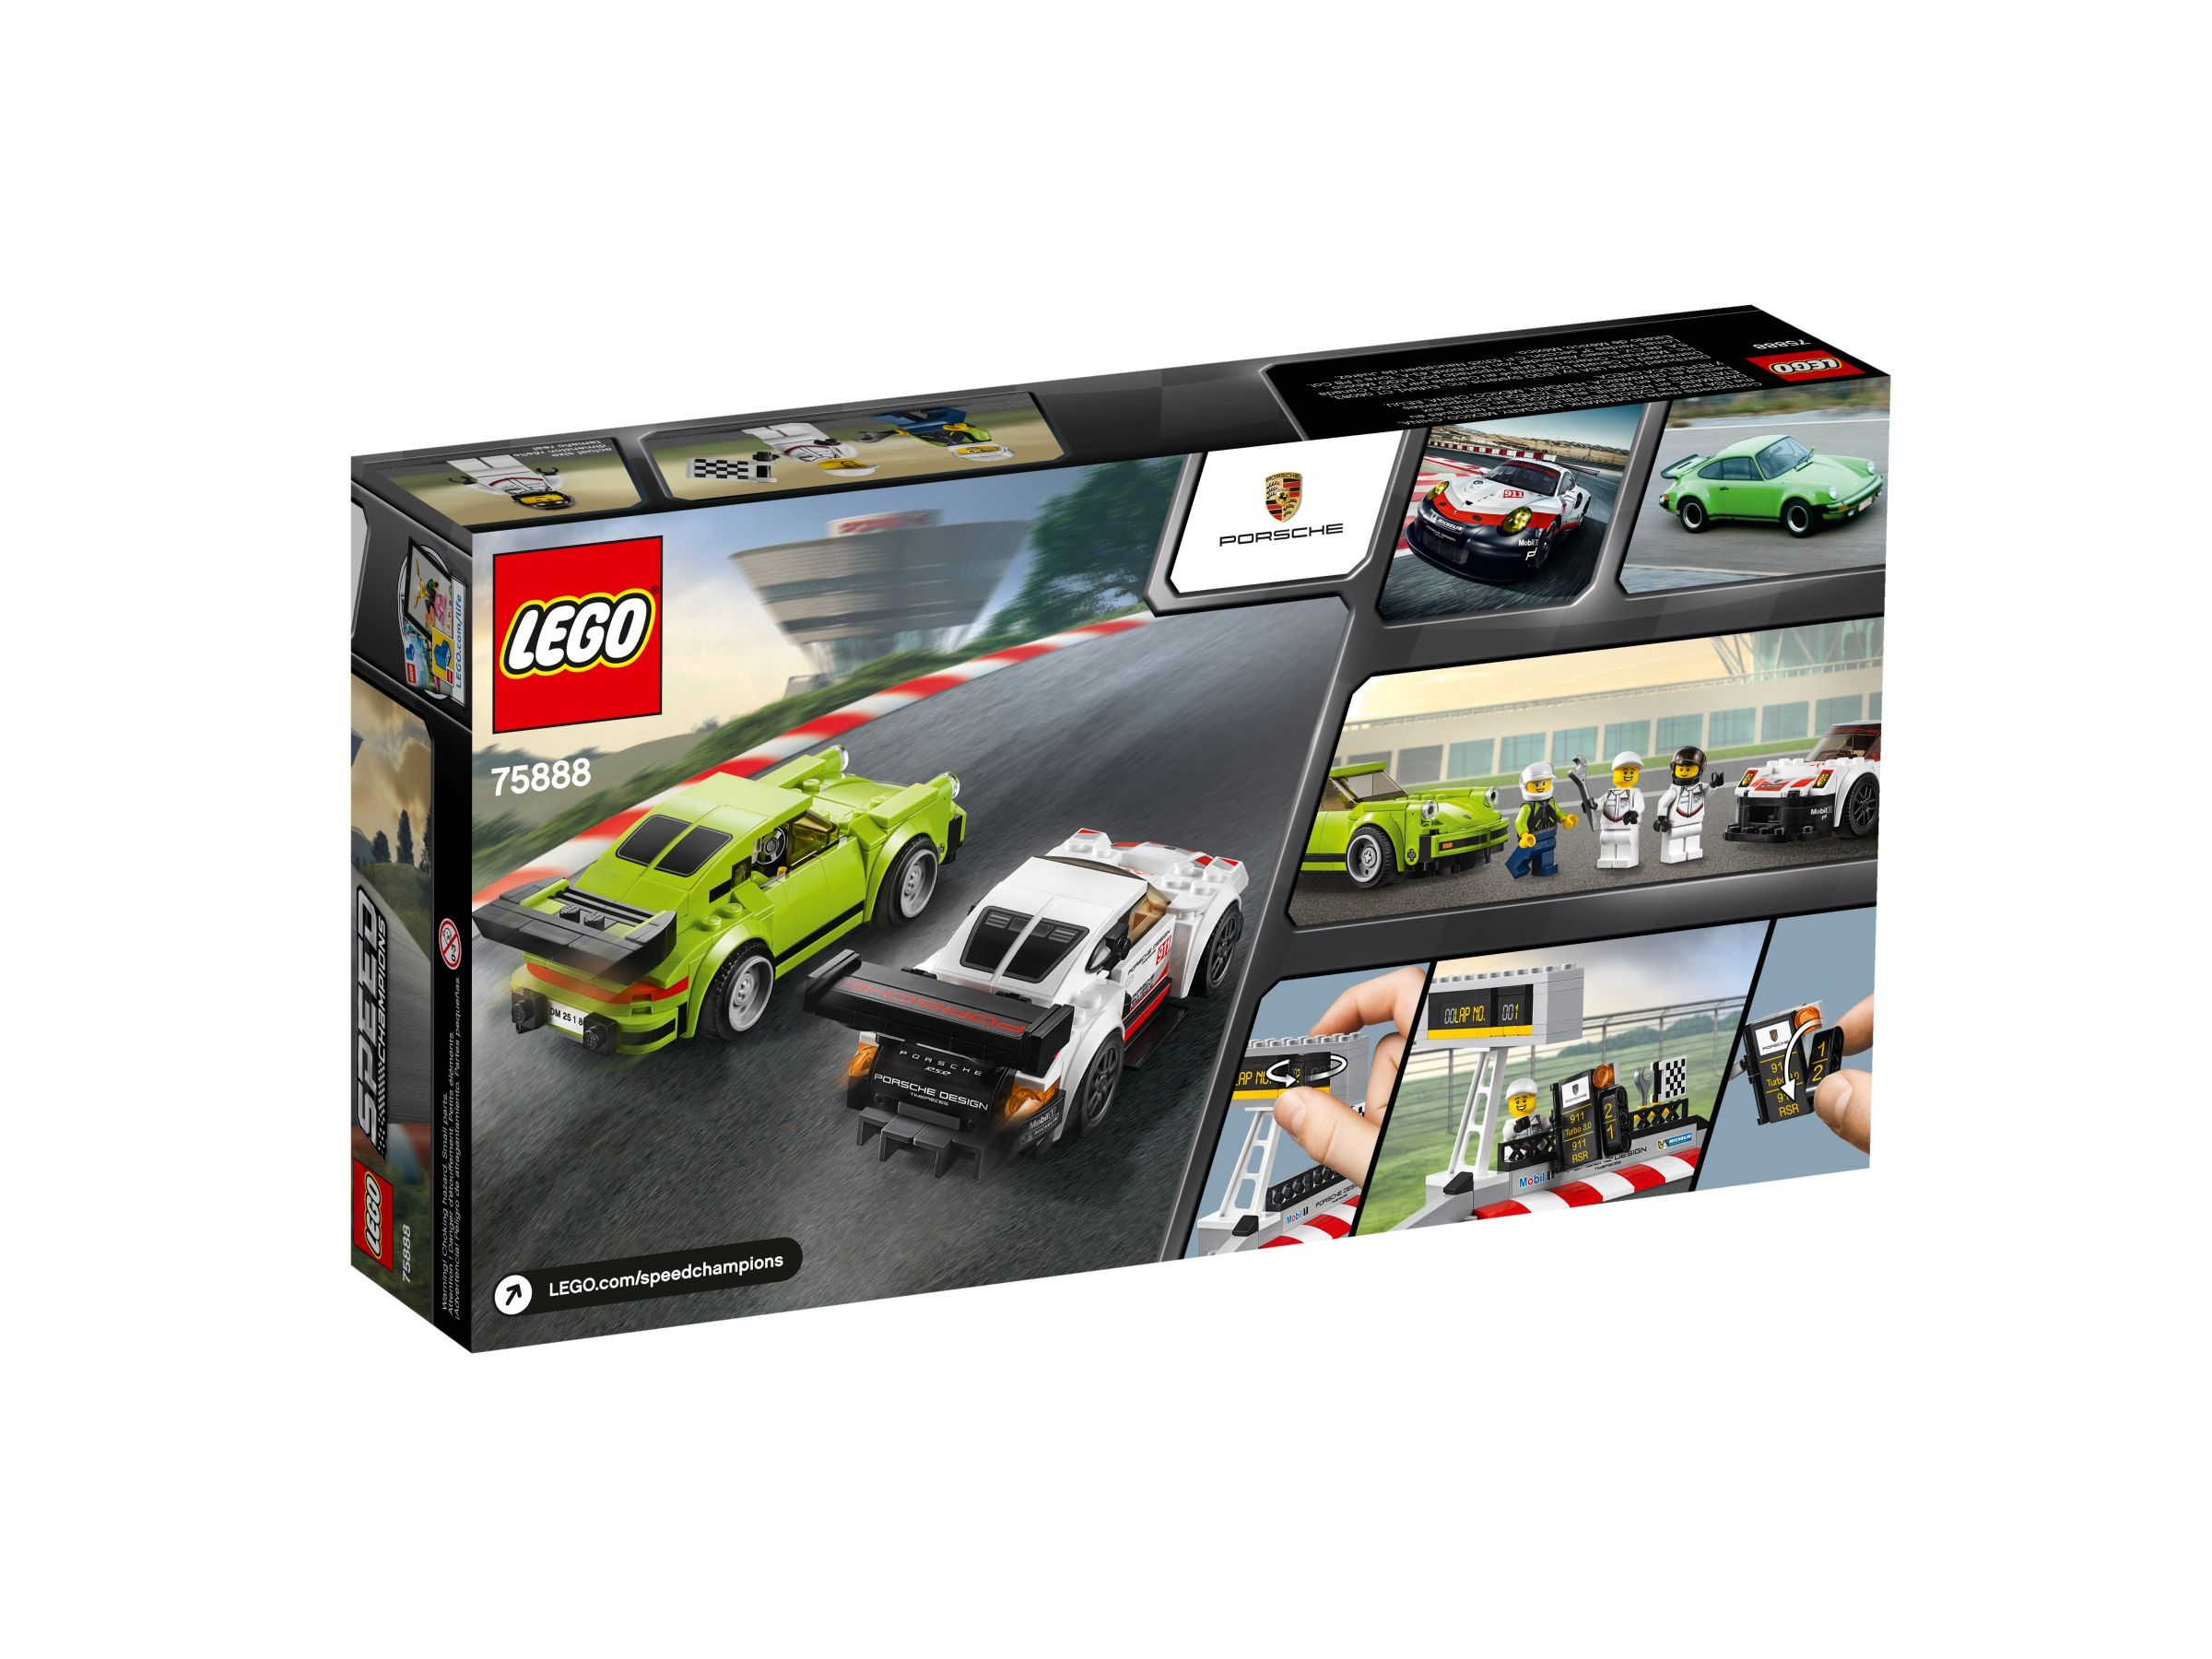 lego 75888 porsche 911 rsr porsche 911 turbo speed champions 2018 ab 29 99 25 gespart. Black Bedroom Furniture Sets. Home Design Ideas